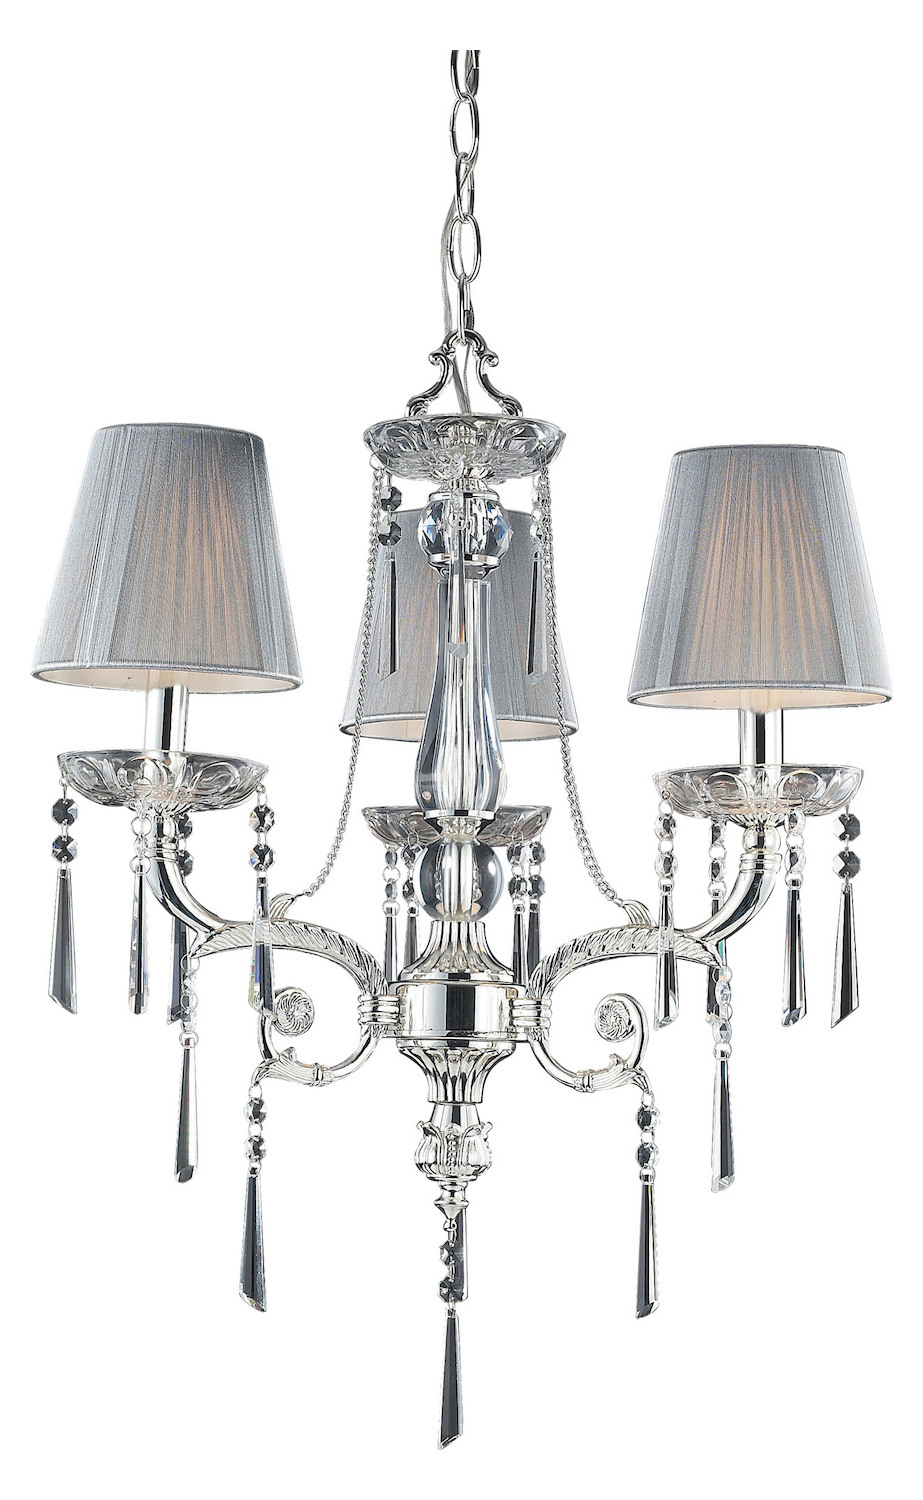 ELK Lighting Three Light Polished Silver Iced Glass Up Chandelier